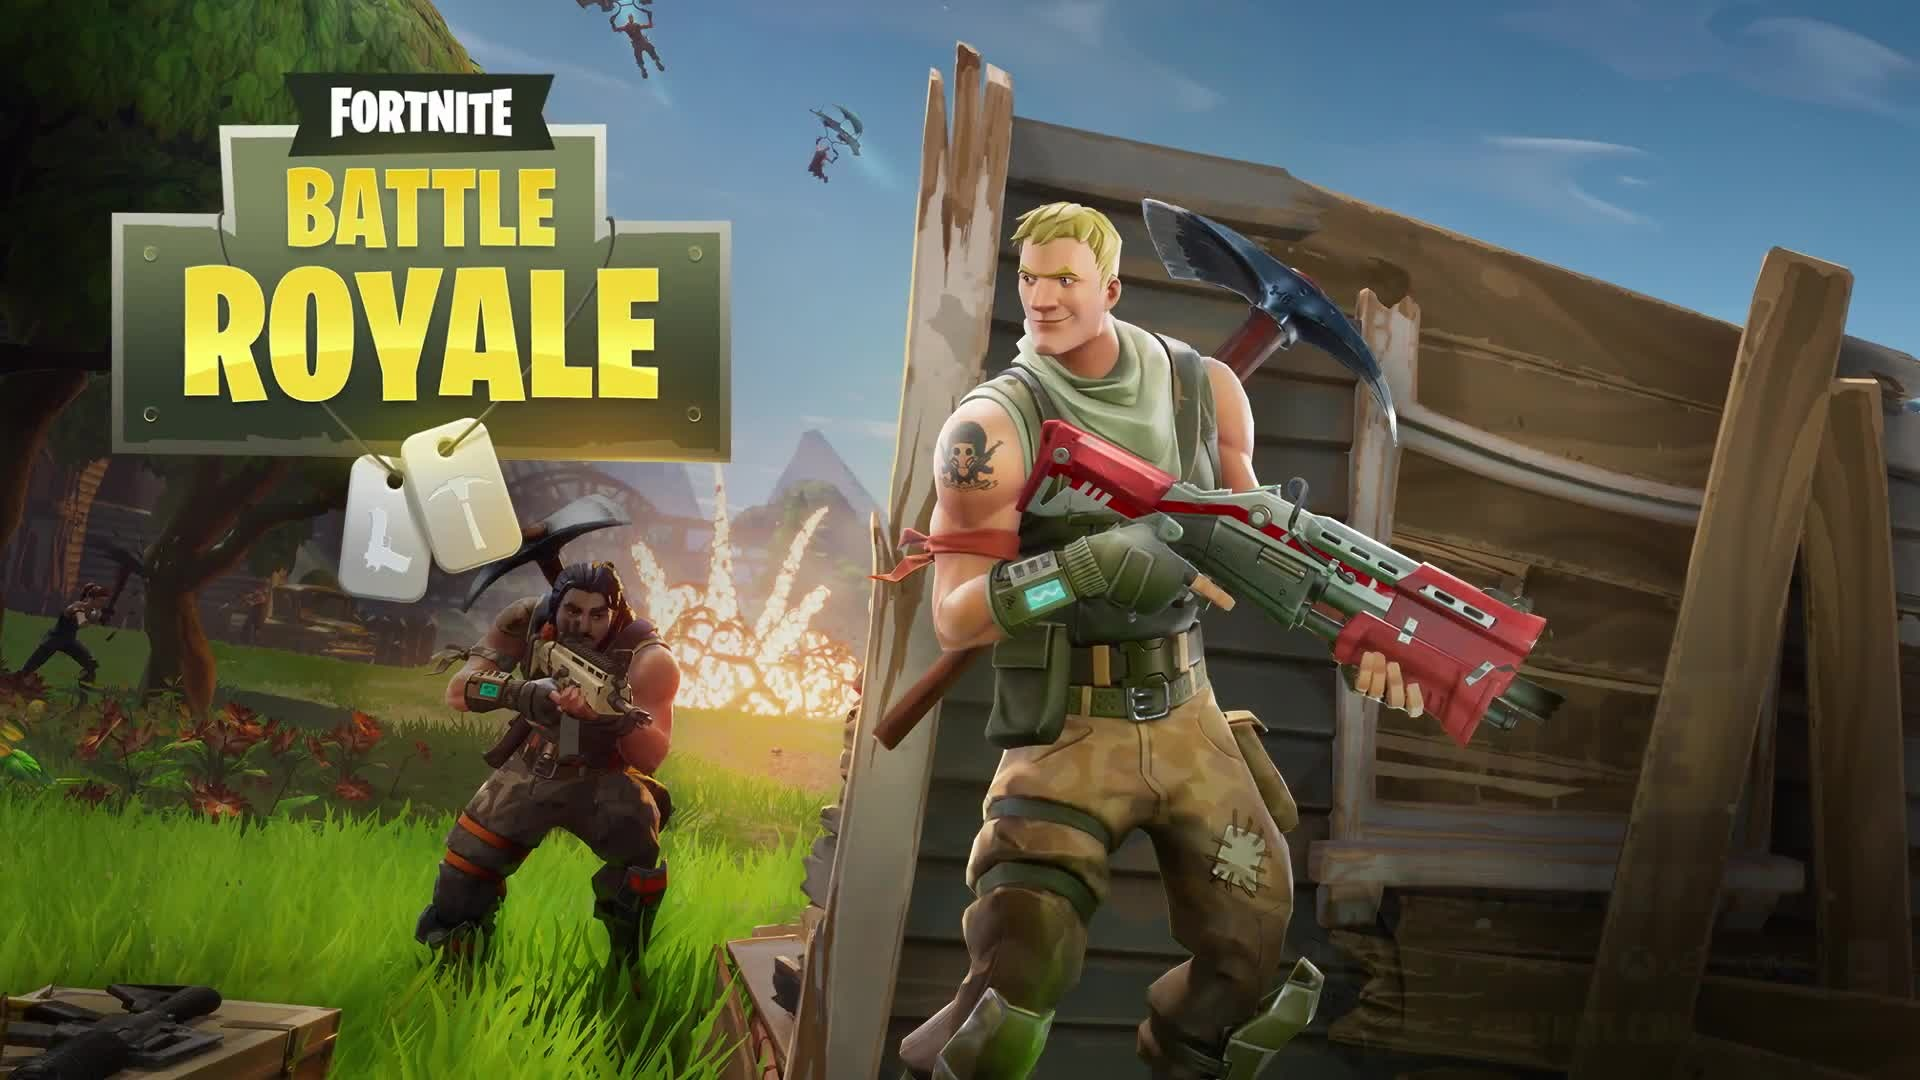 Fortnite Battle Royale   Epic meldet 10 Millionen Spieler 1920x1080